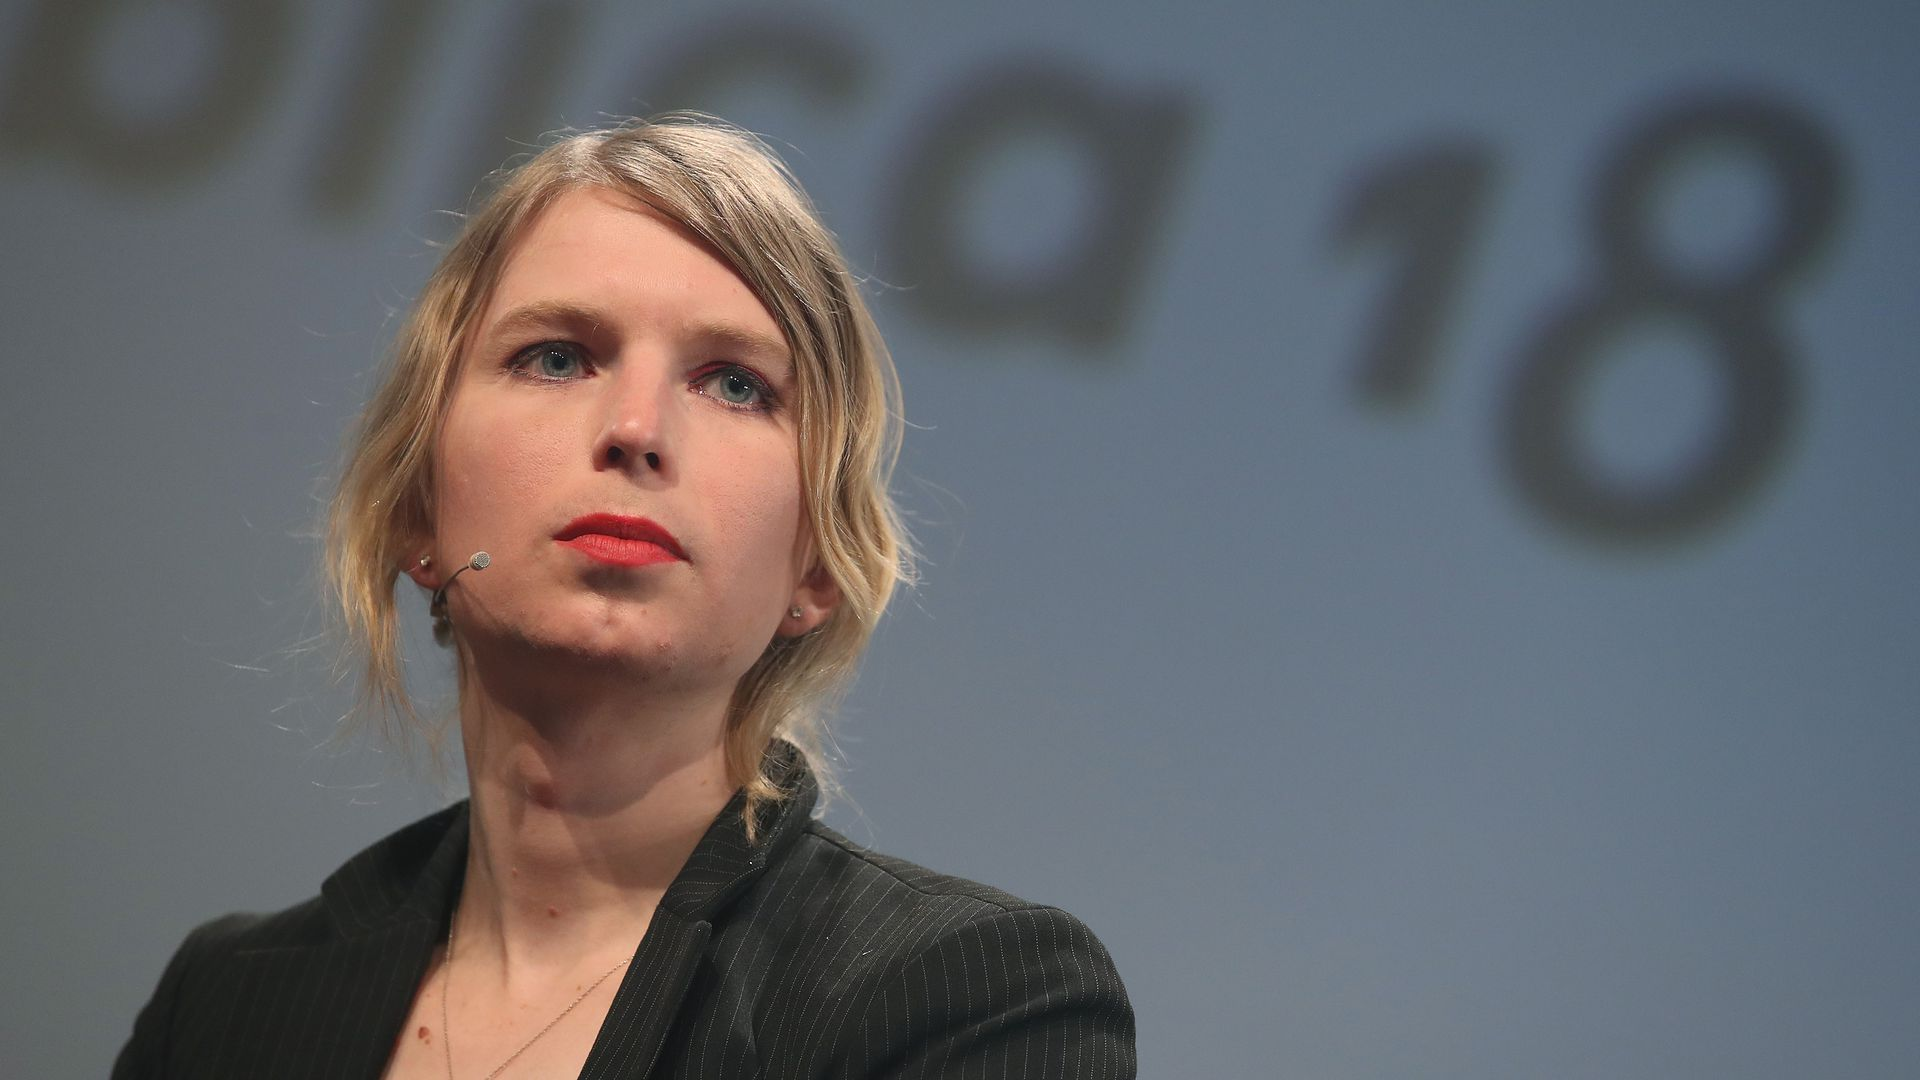 former US Army intelligence analyst, Chelsea Manning